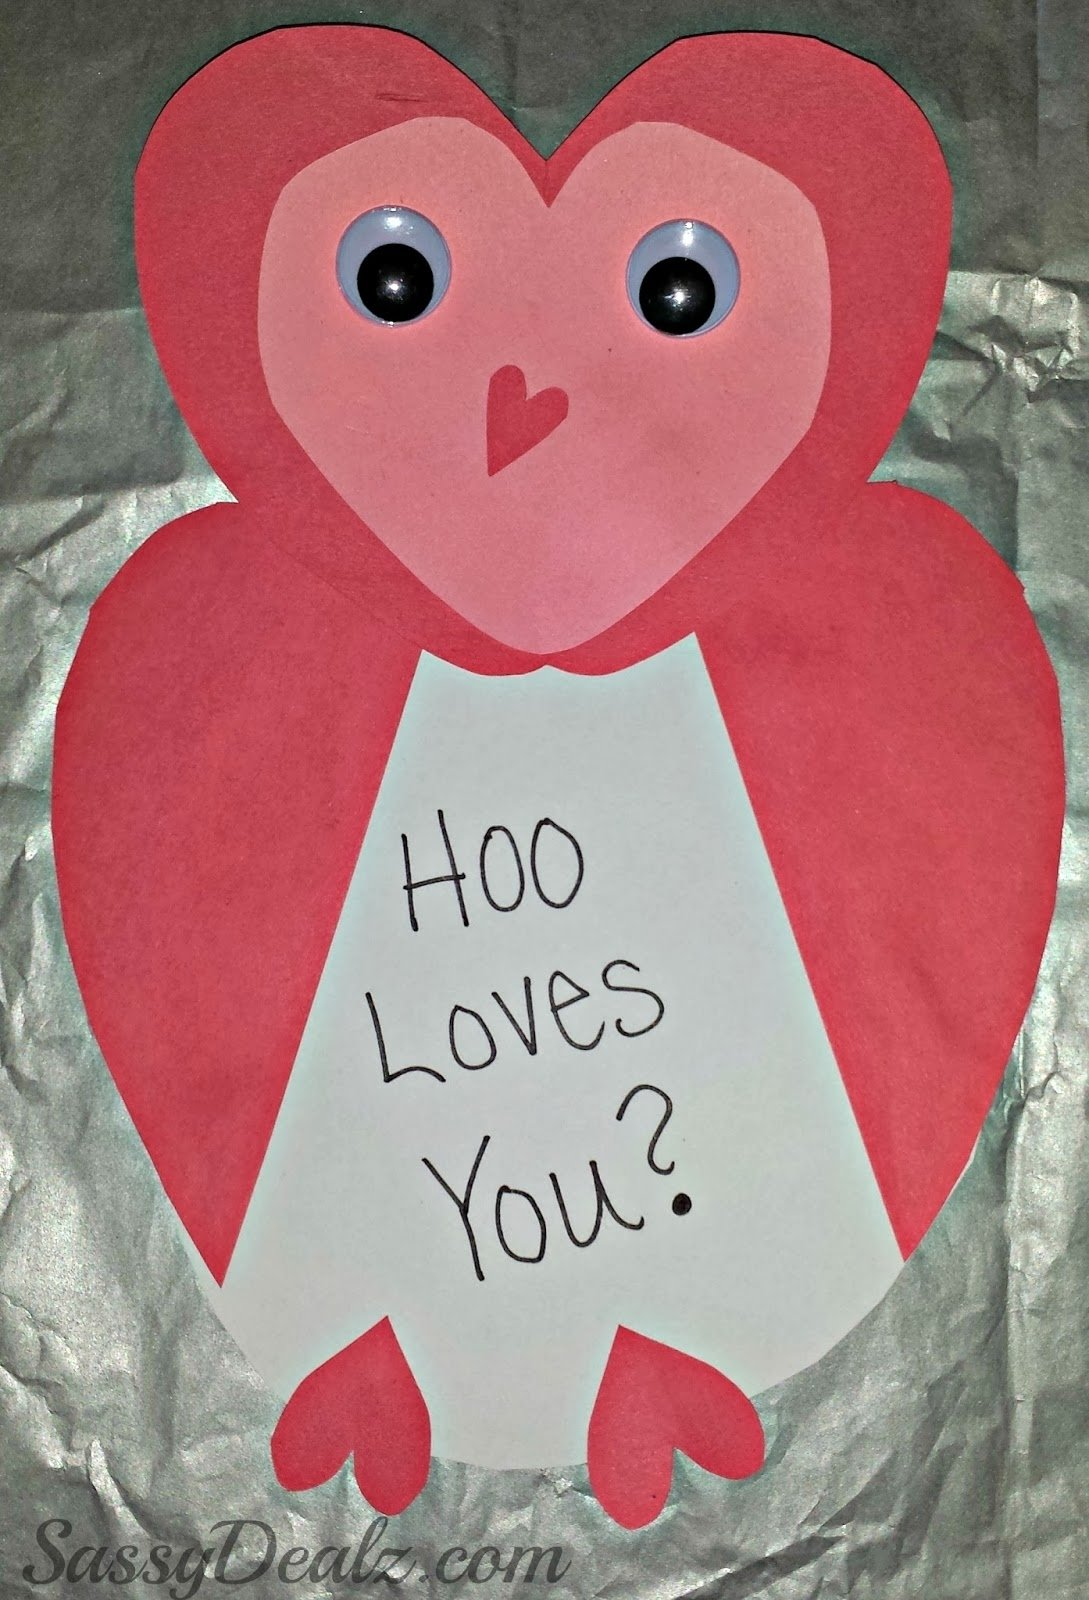 10 Fashionable Valentine Day Card Ideas Homemade owl valentines day card idea for kids crafty morning 4